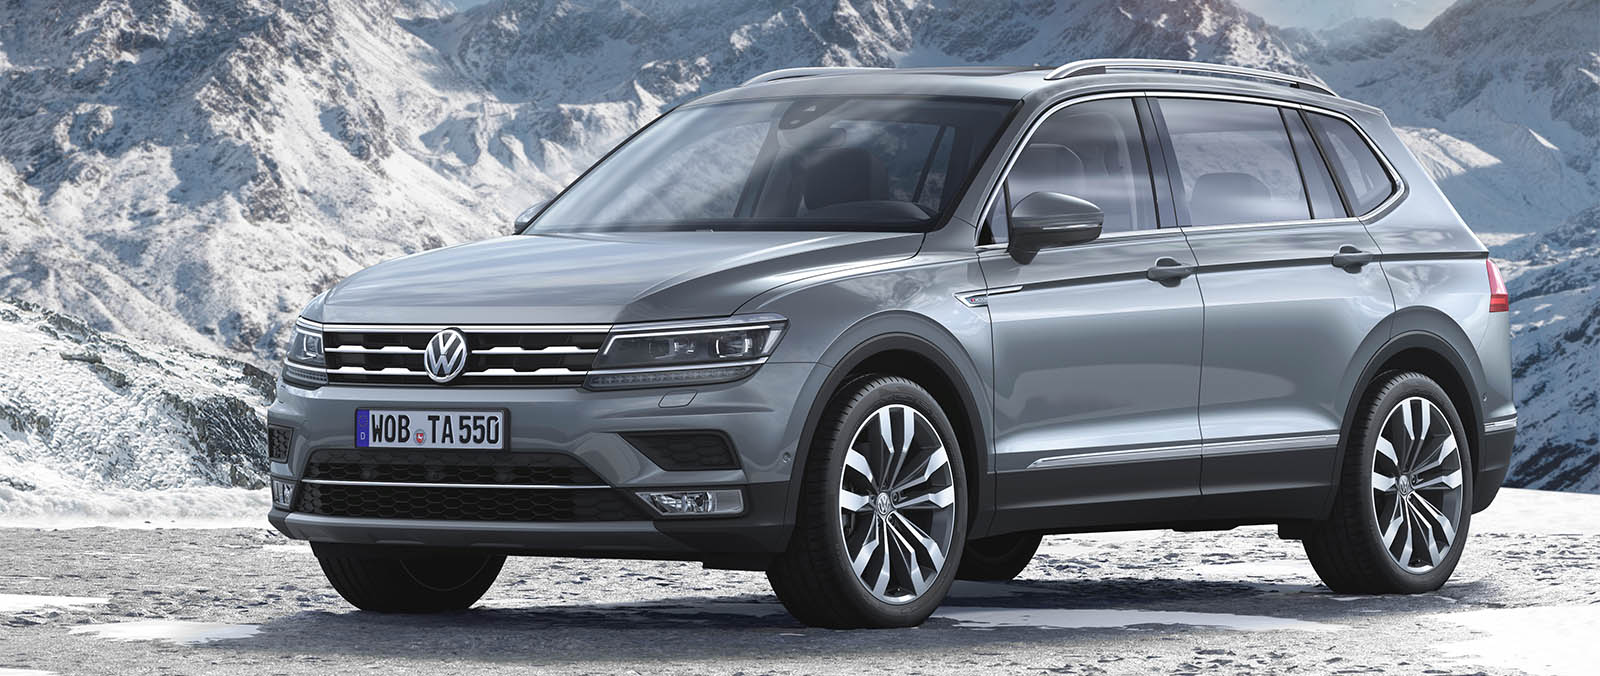 nieuwe volkswagen tiguan allspace volkswagen. Black Bedroom Furniture Sets. Home Design Ideas